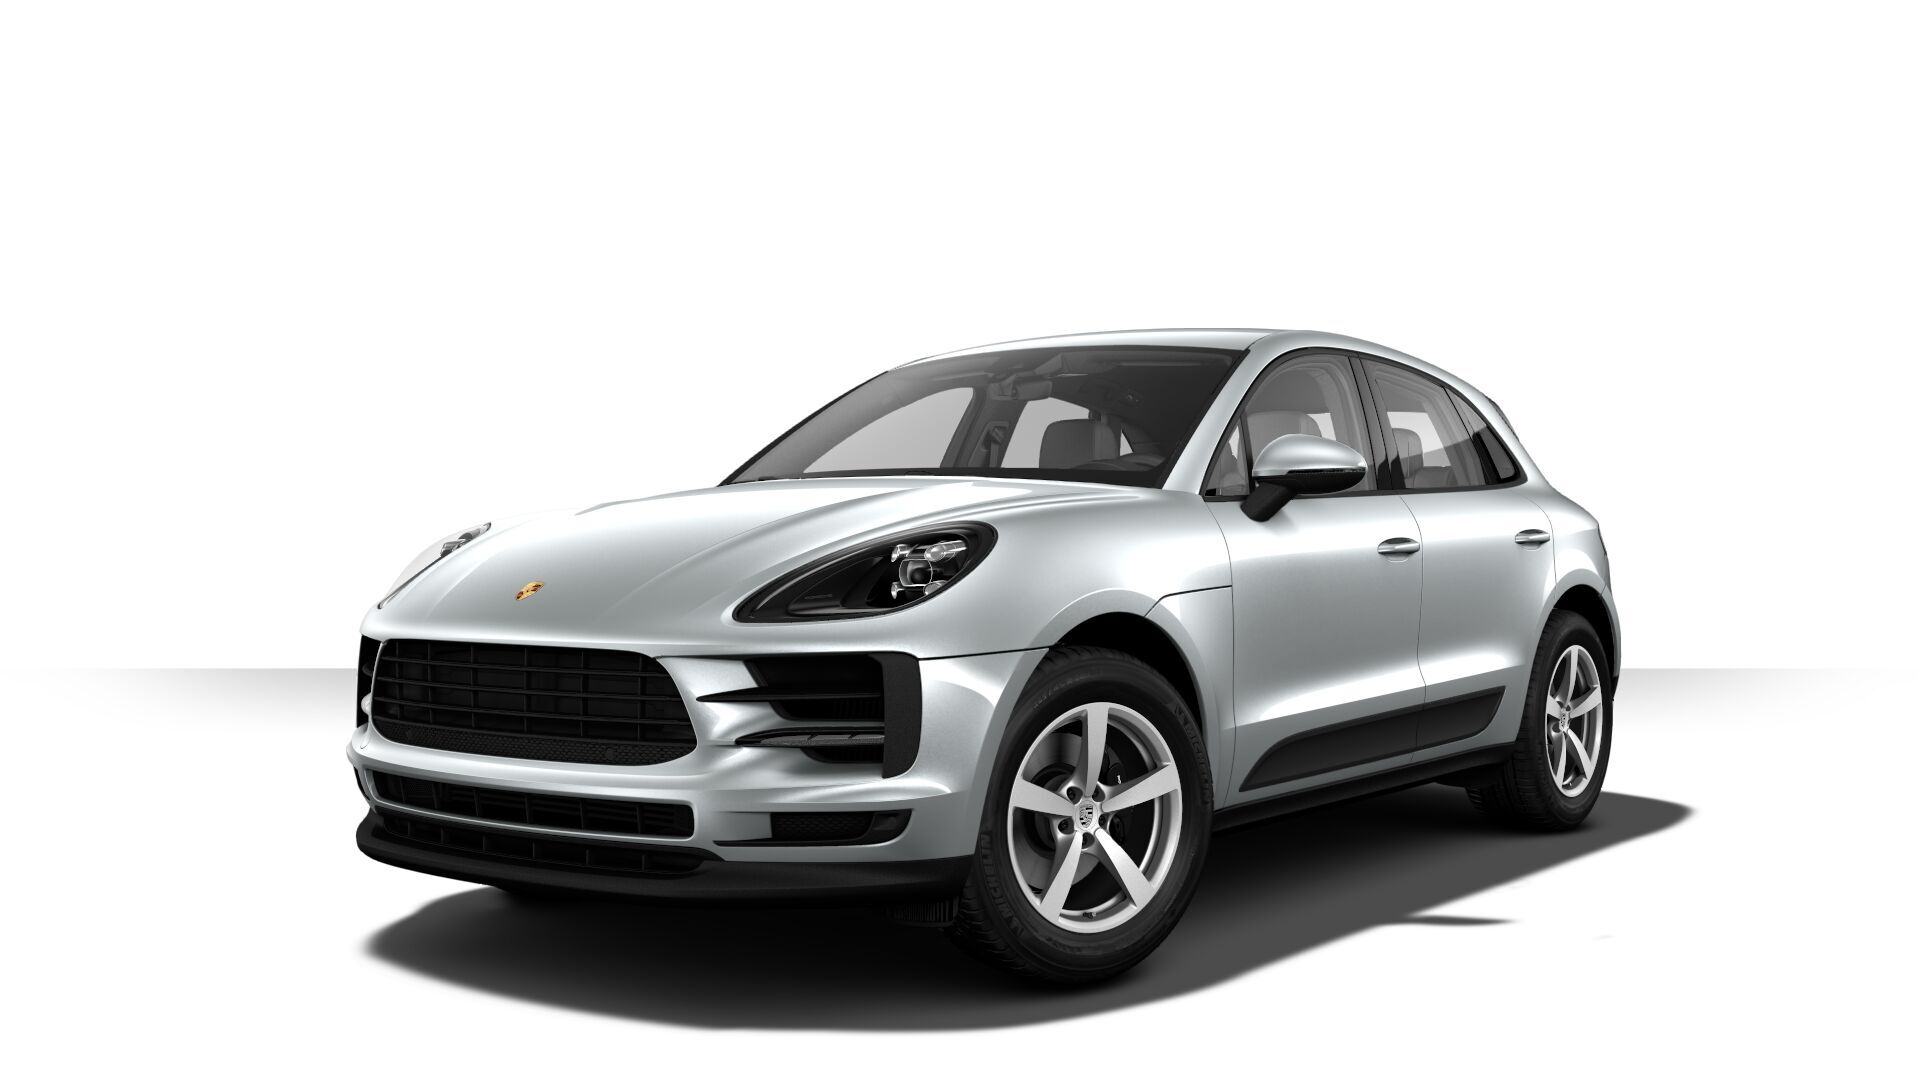 New 2020 Porsche Macan | Porsche Exchange